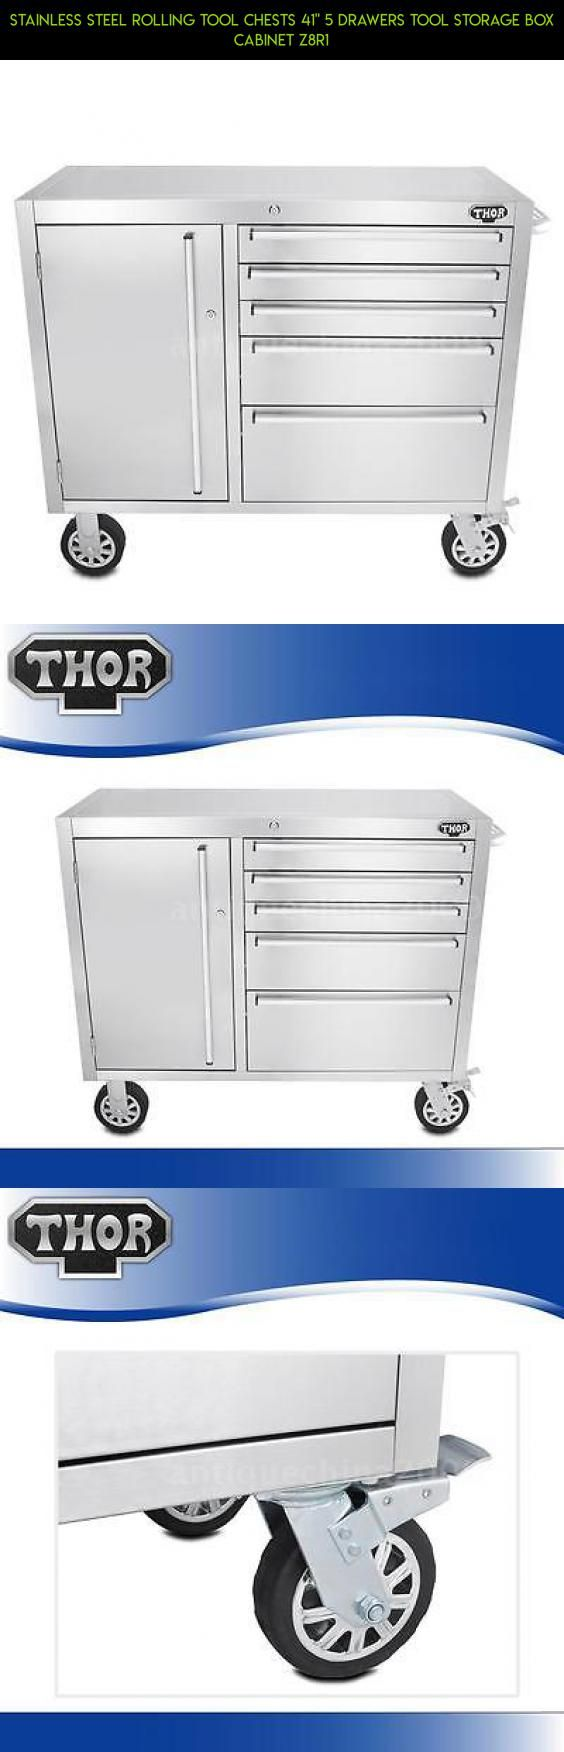 """Stainless Steel Rolling Tool Chests 41"""" 5 Drawers Tool Storage Box Cabinet Z8R1 #plans #storage #parts #5 #drawers #shopping #technology #drone #kit #products #fpv #racing #camera #tech #gadgets"""